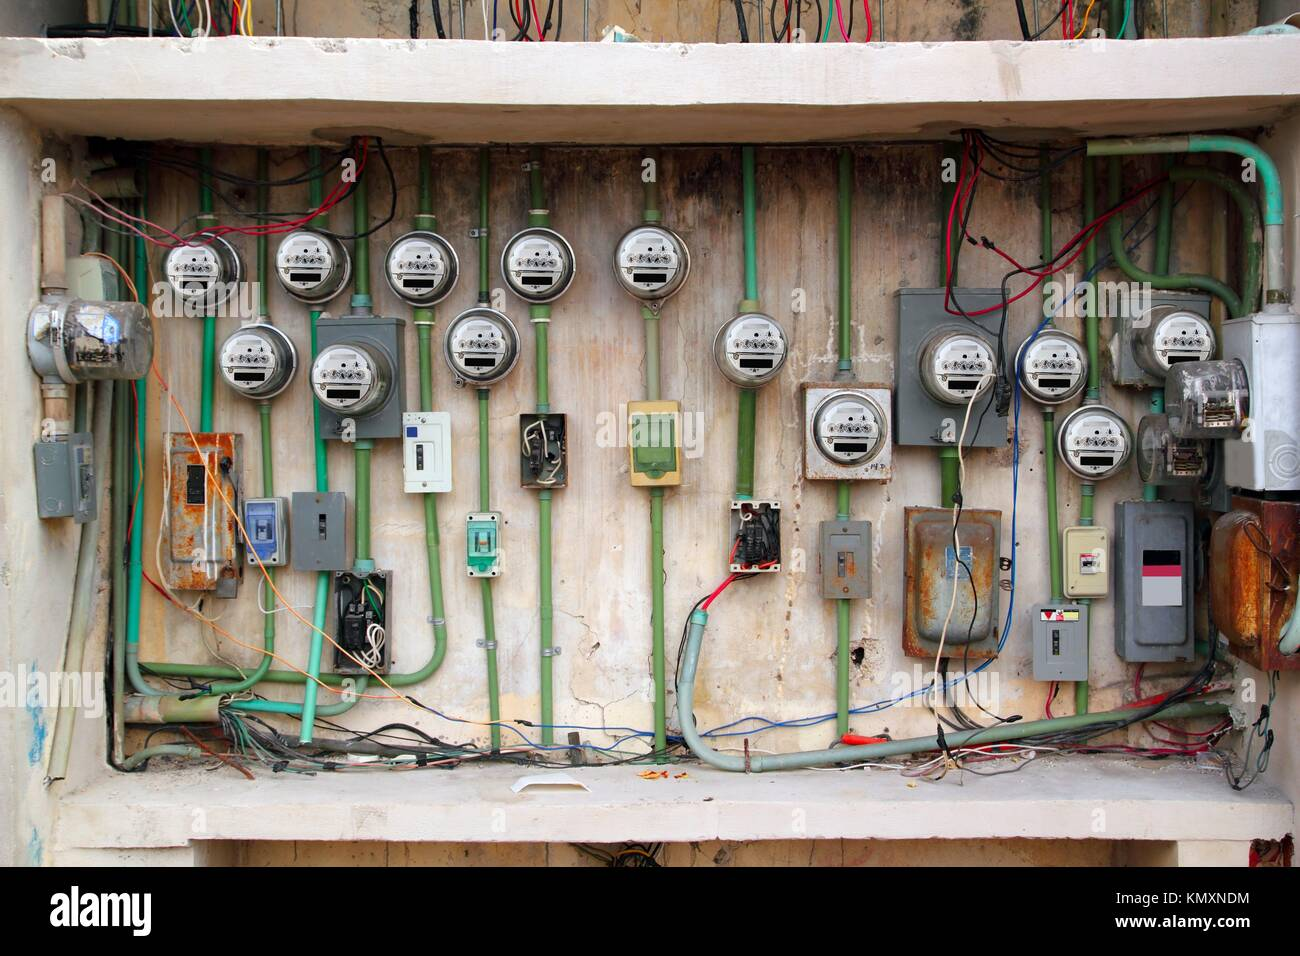 Peachy Dangerous Electric Meter Messy Faulty Electrical Wiring Installation Wiring 101 Akebretraxxcnl